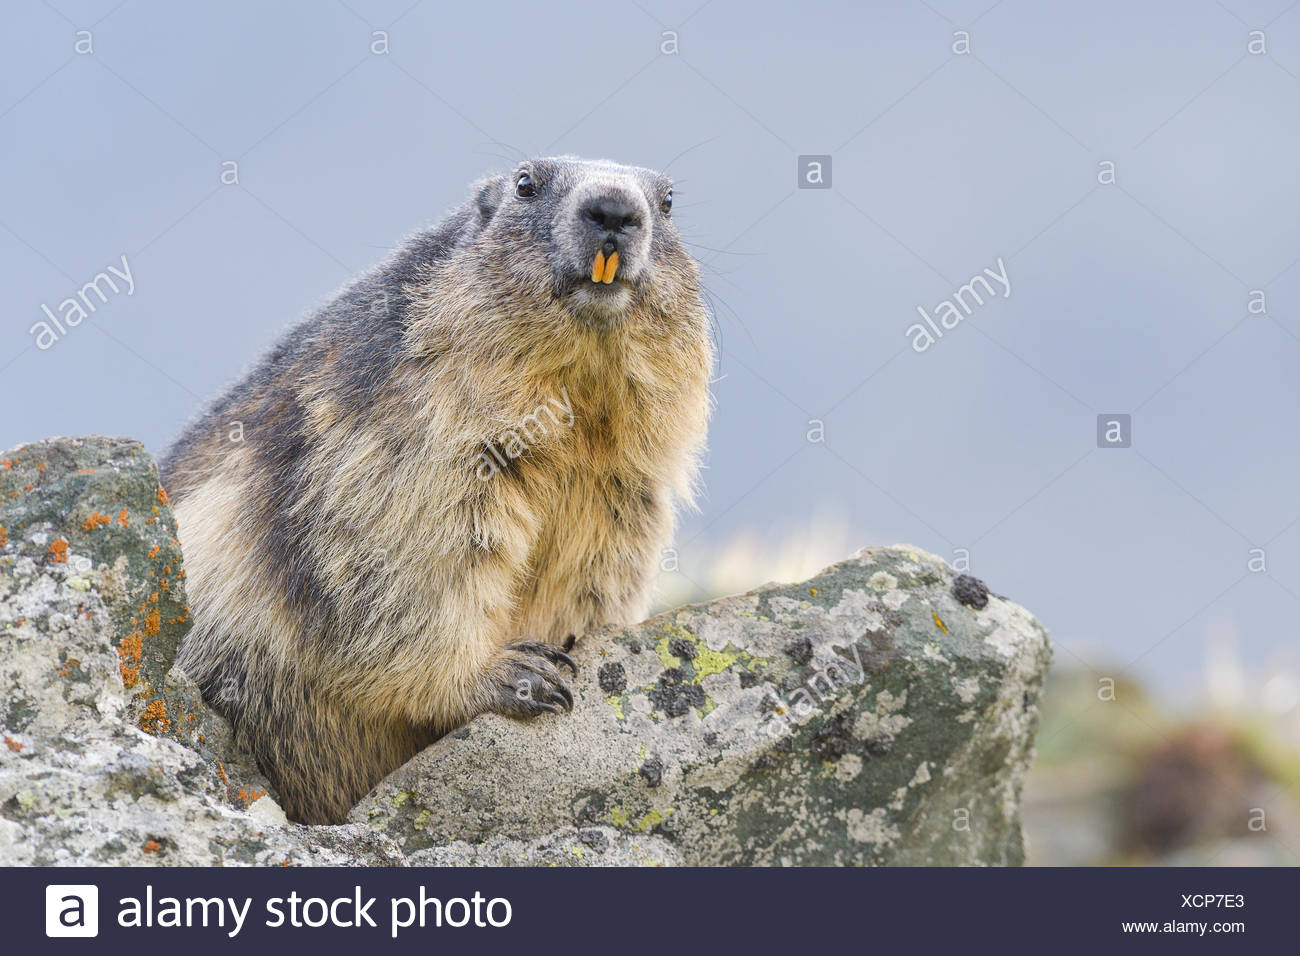 Alpine Marmot (Marmota marmota) on rocks, animal portrait, national park Hohe Tauern, Carinthia, Austria - Stock Image